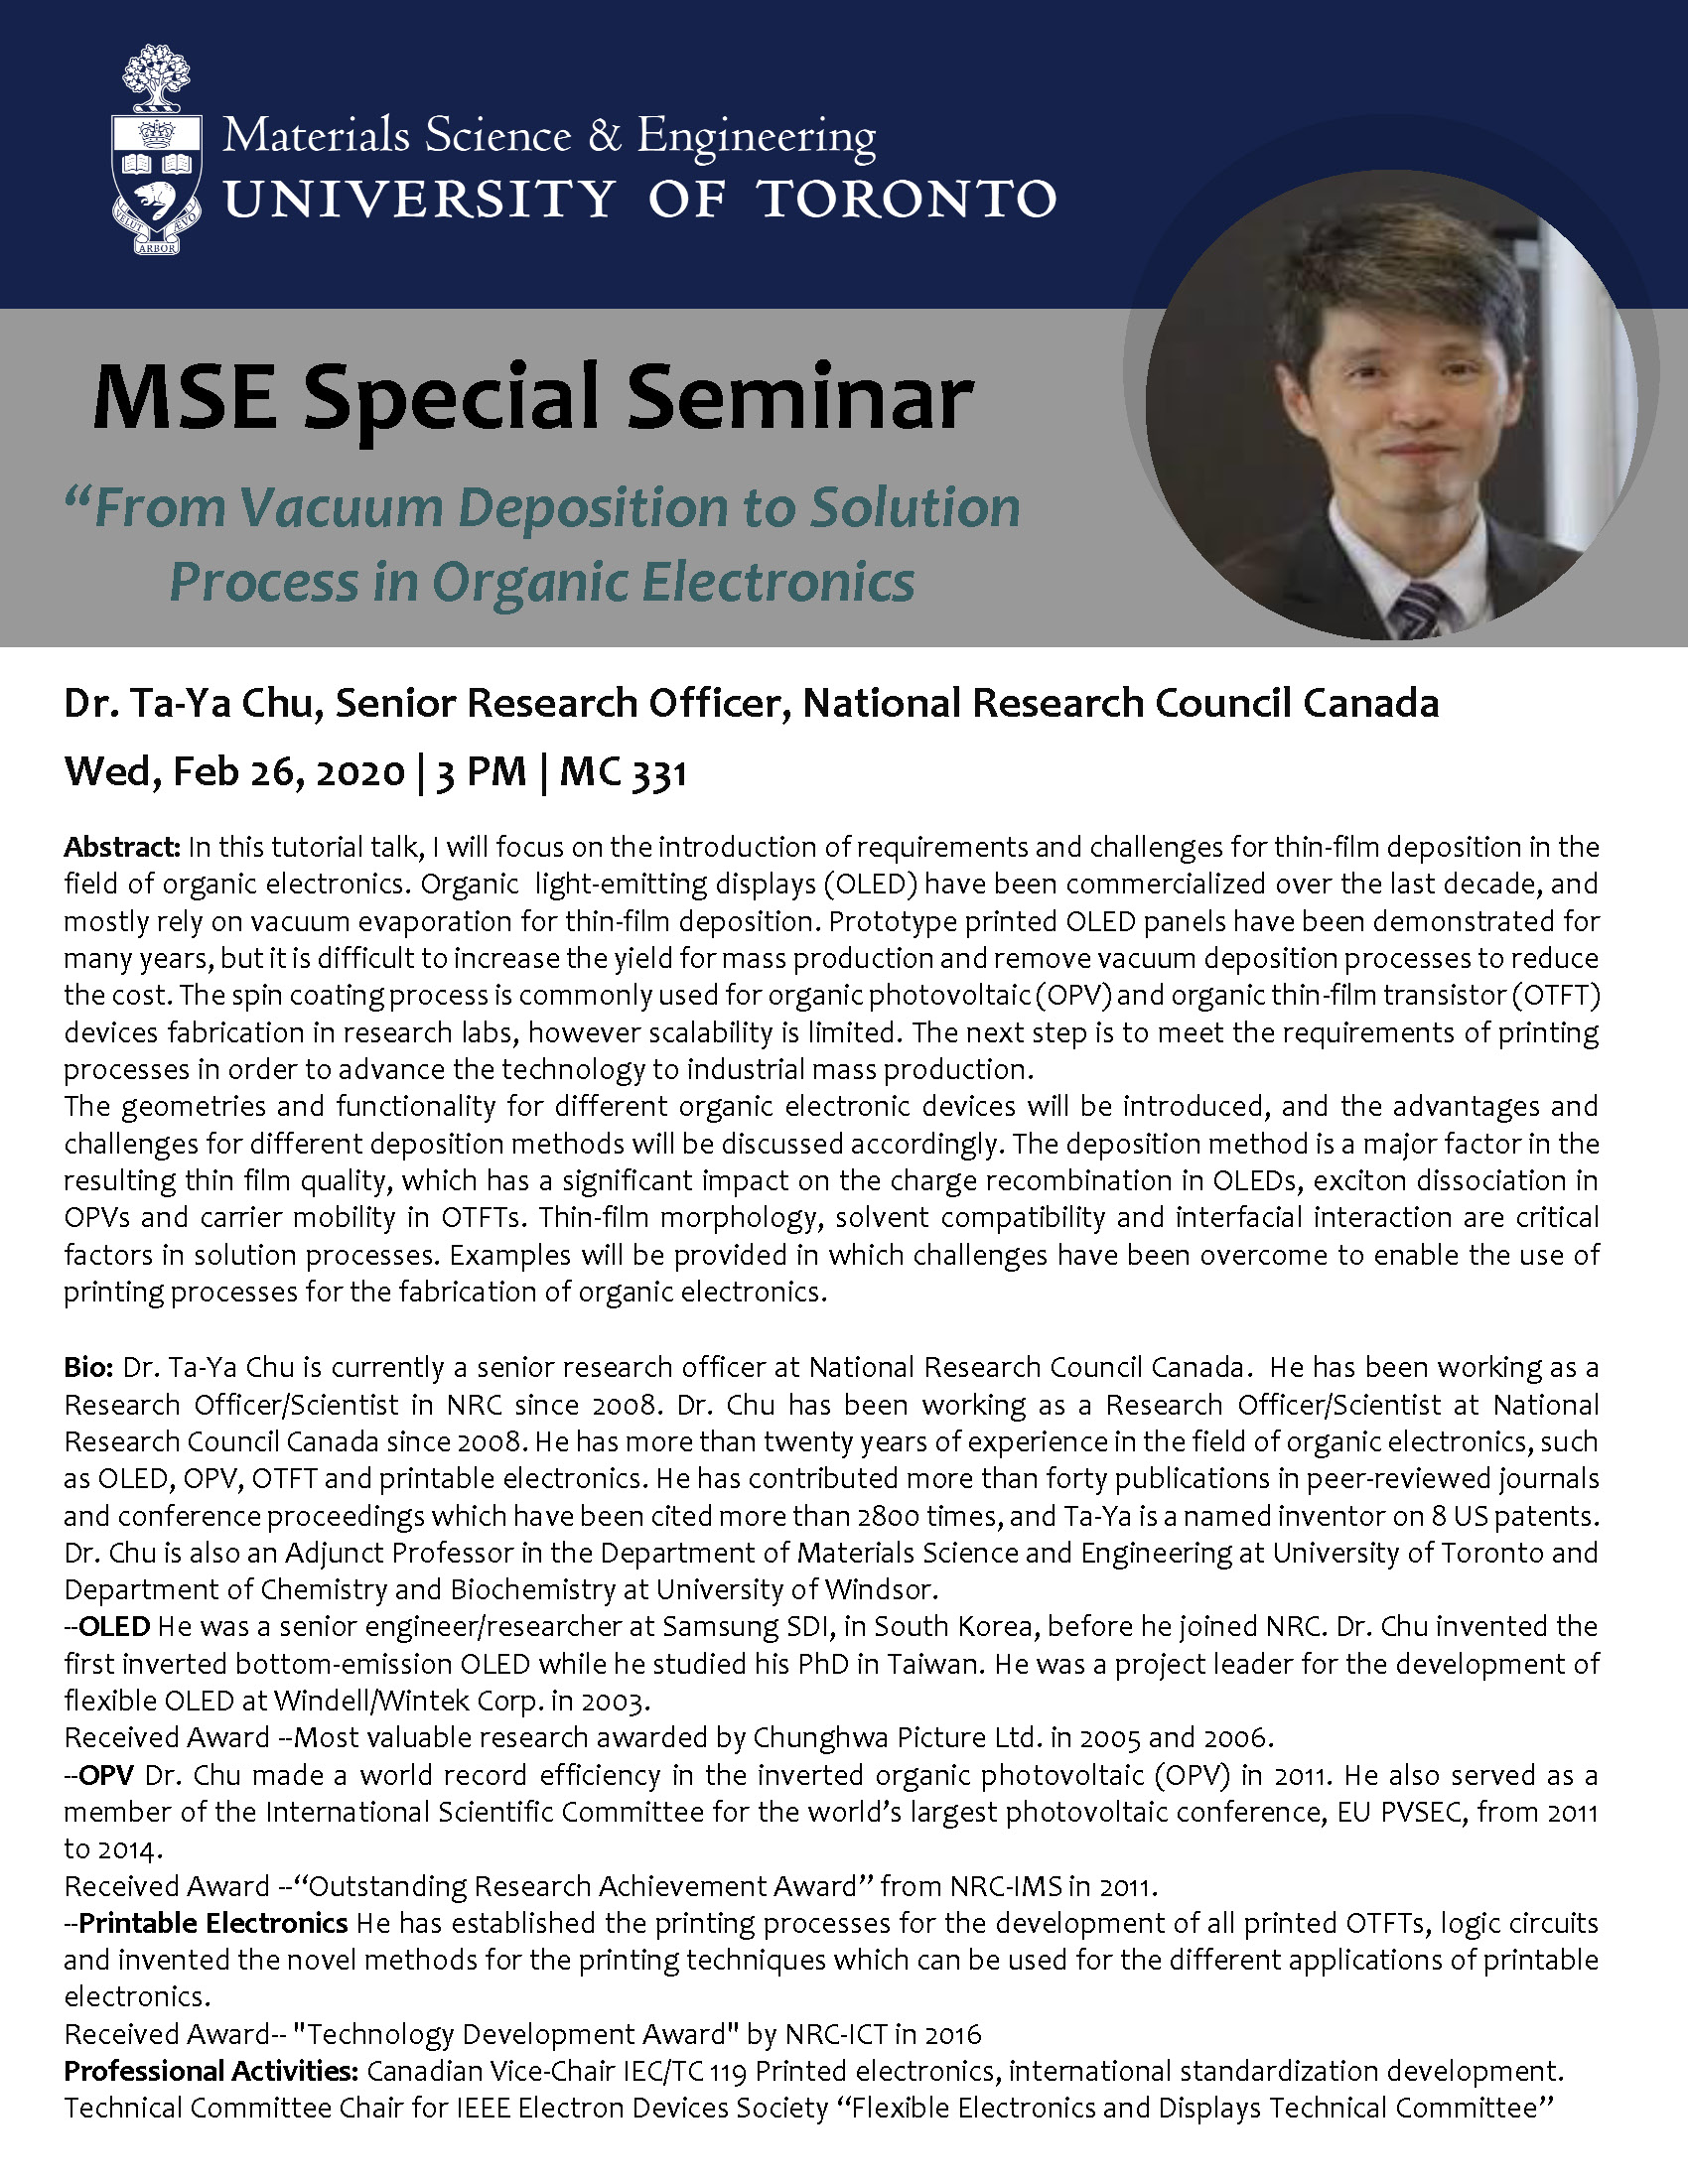 """MSE Special Seminar: """"From Vacuum Deposition to Solution Process in Organic Electronics"""" by Dr Chu"""